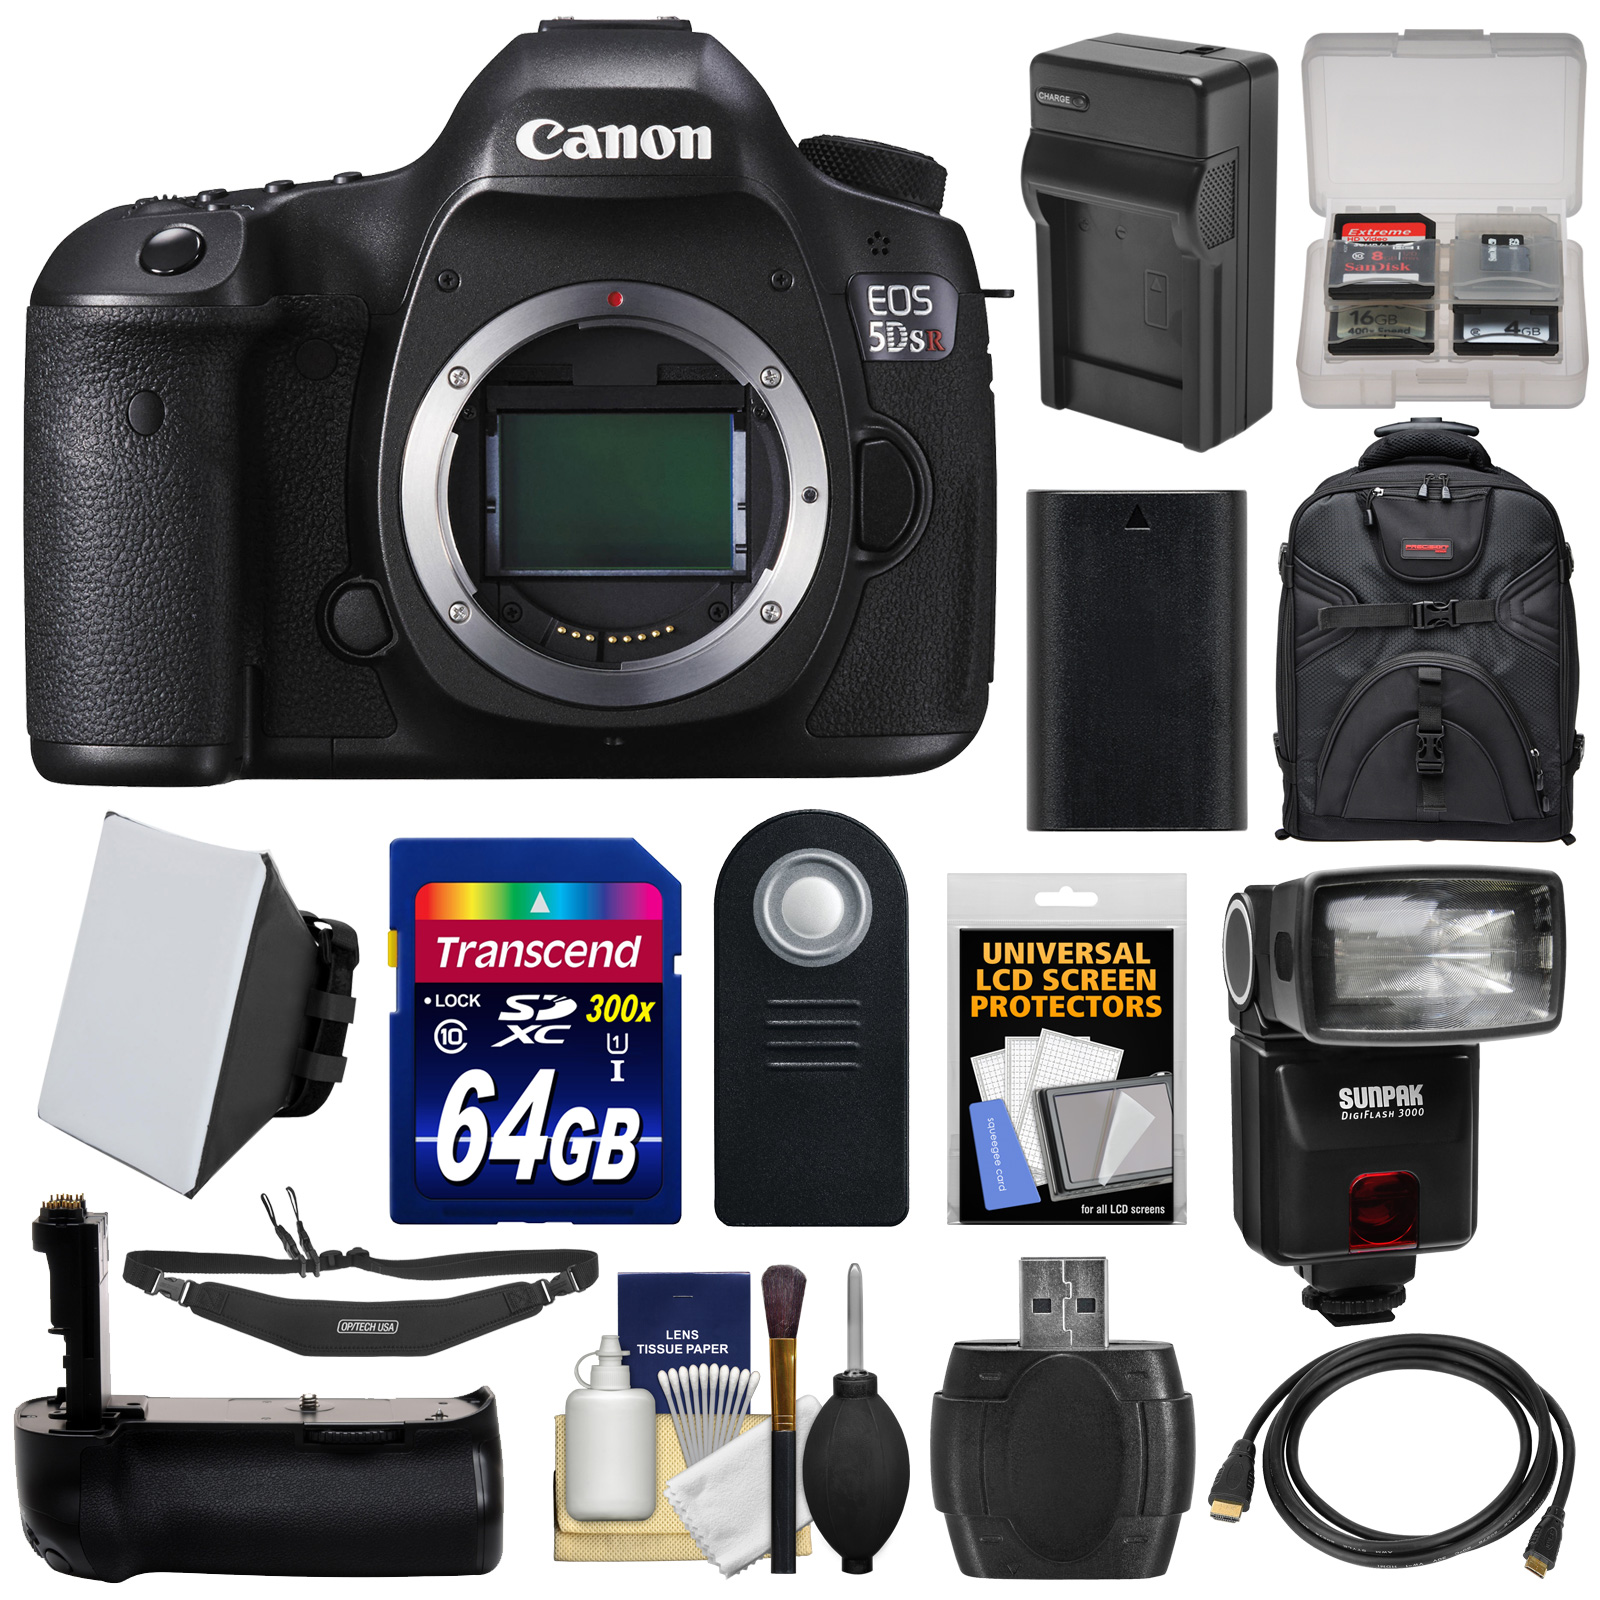 Canon EOS 5DS R Digital SLR Camera Body with 64GB Card + Battery & Charger + Backpack + Grip + Flash + Kit by Canon